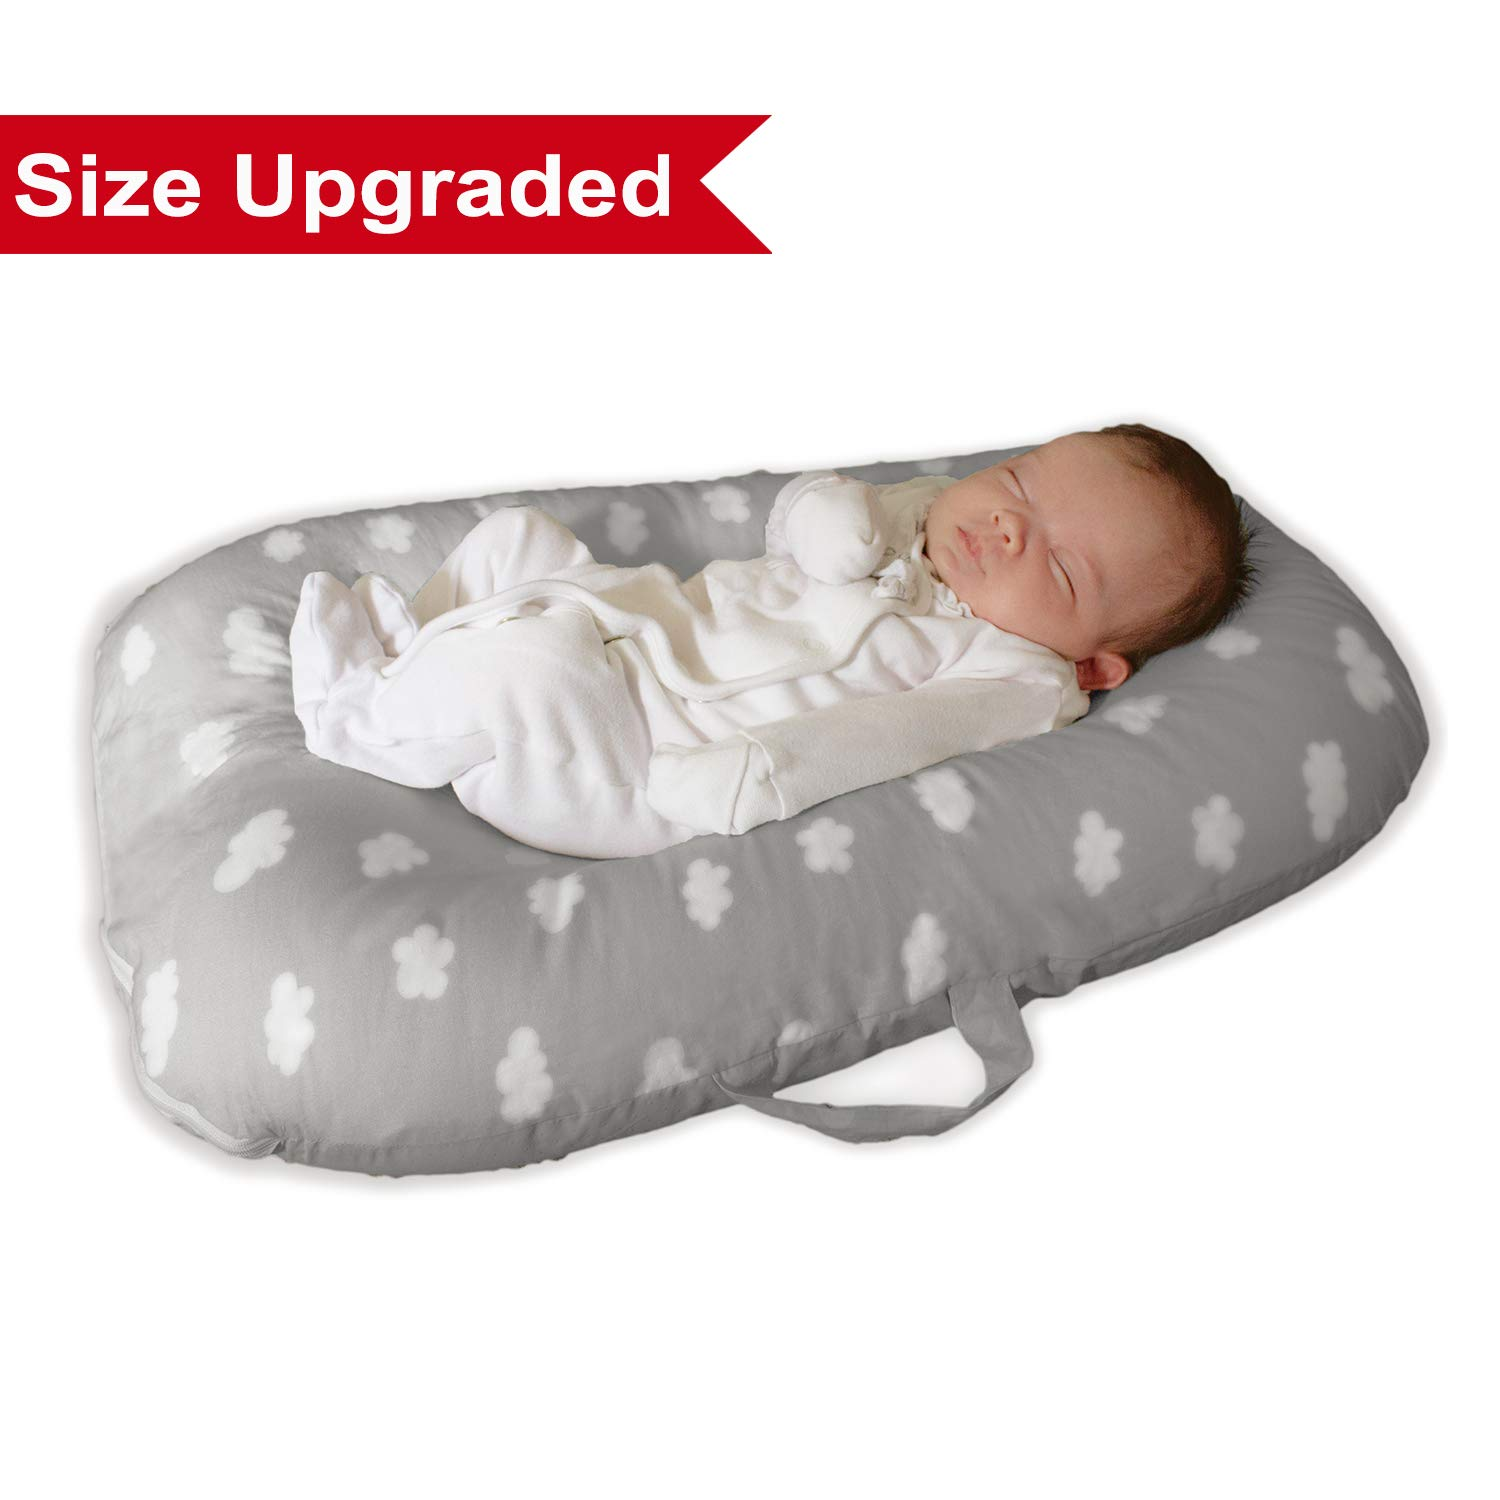 Baby Lounger Bed Bassinet for Baby Shower Gift Portable Infants Crib for 0-6 Months Cotton,Removable cover, Flame Resistant Filling by YGJT by YGJT